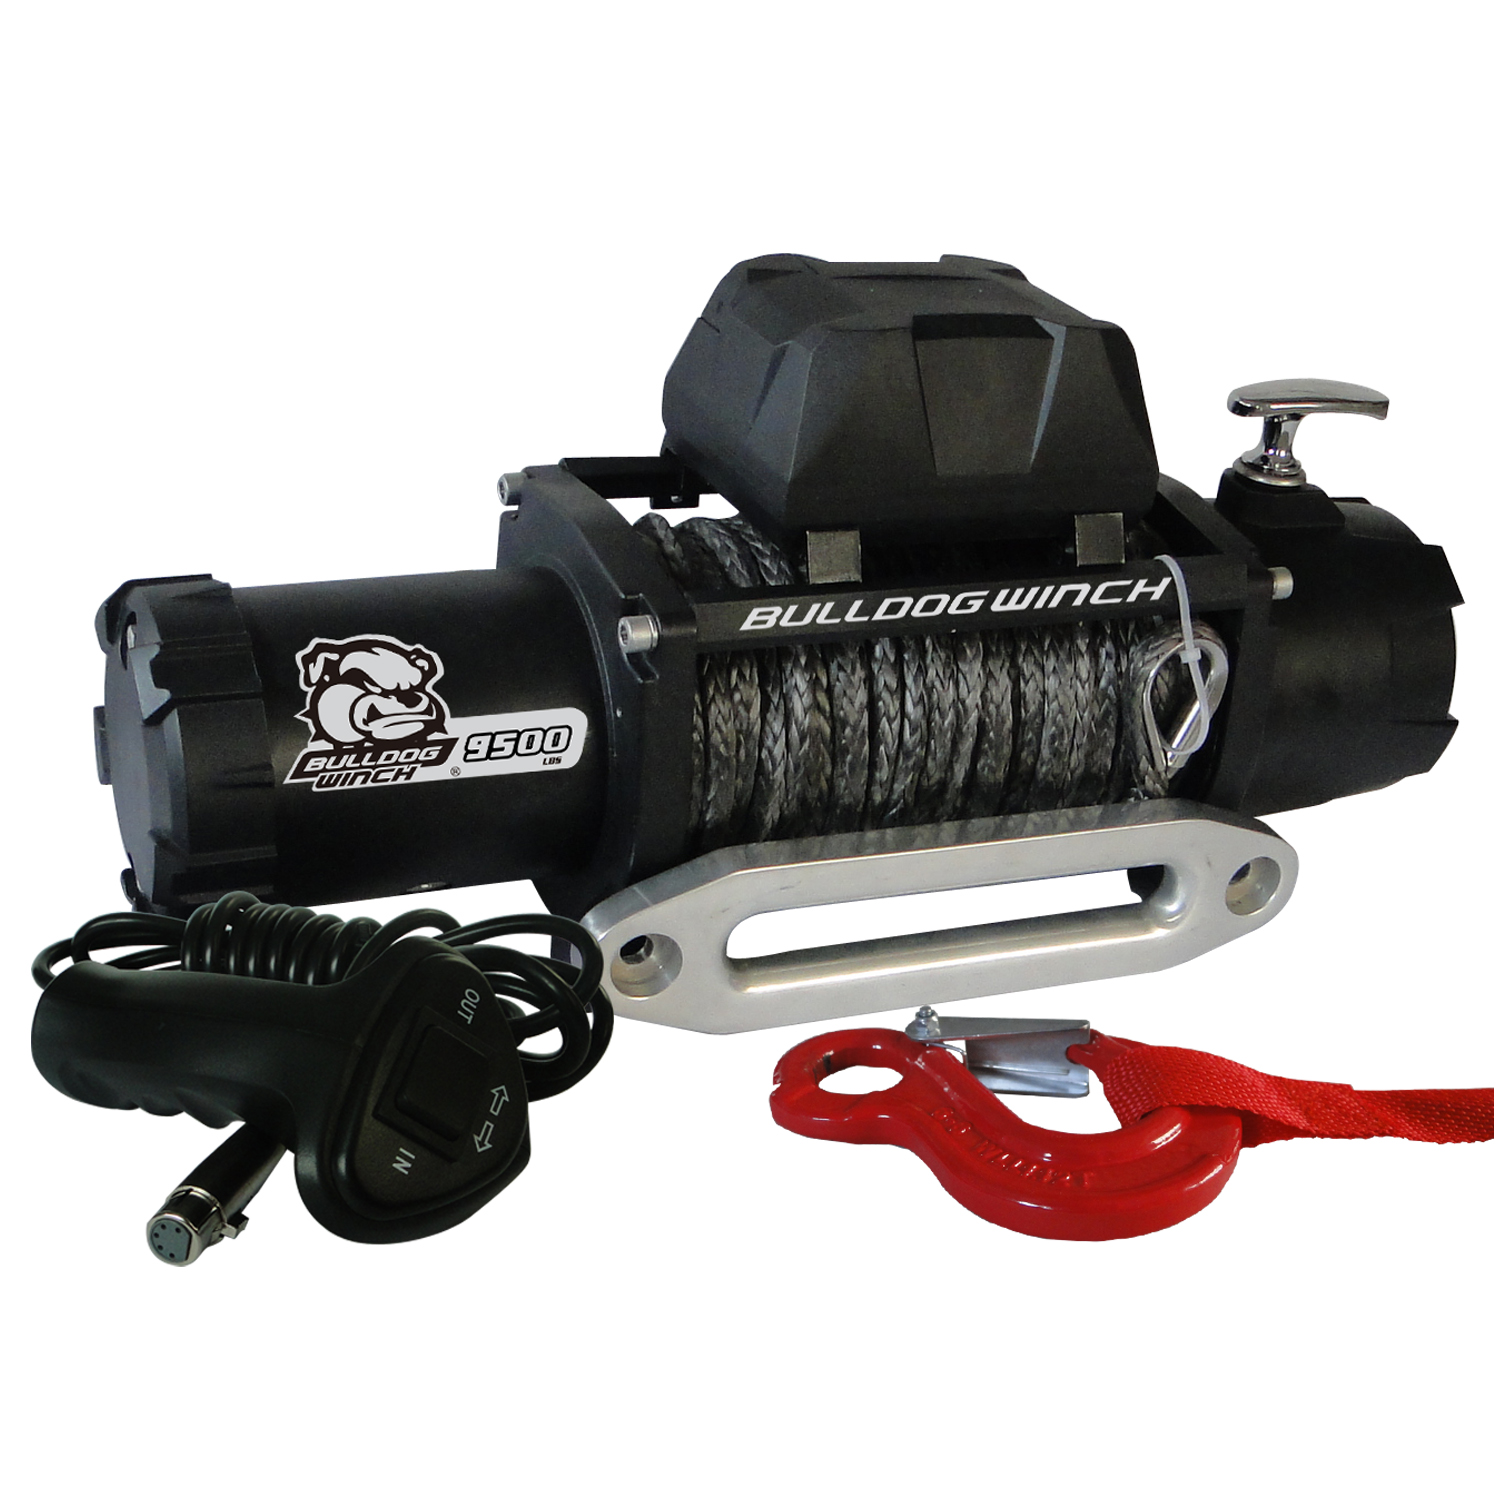 Bulldog Winch 9,500lb Winch w/ 100ft Synthetic Rope